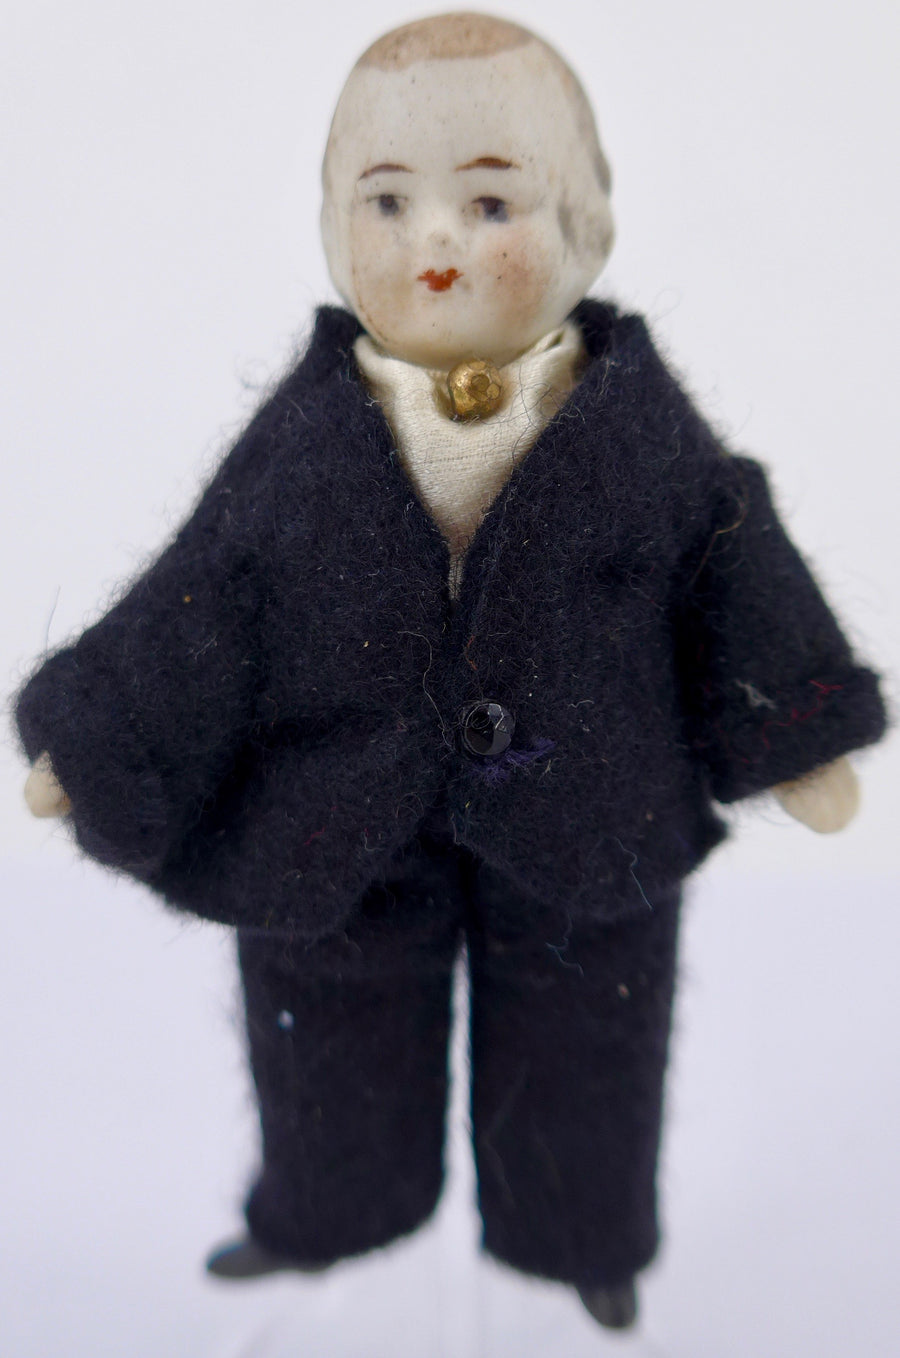 young male bisque dollhouse doll, black suit